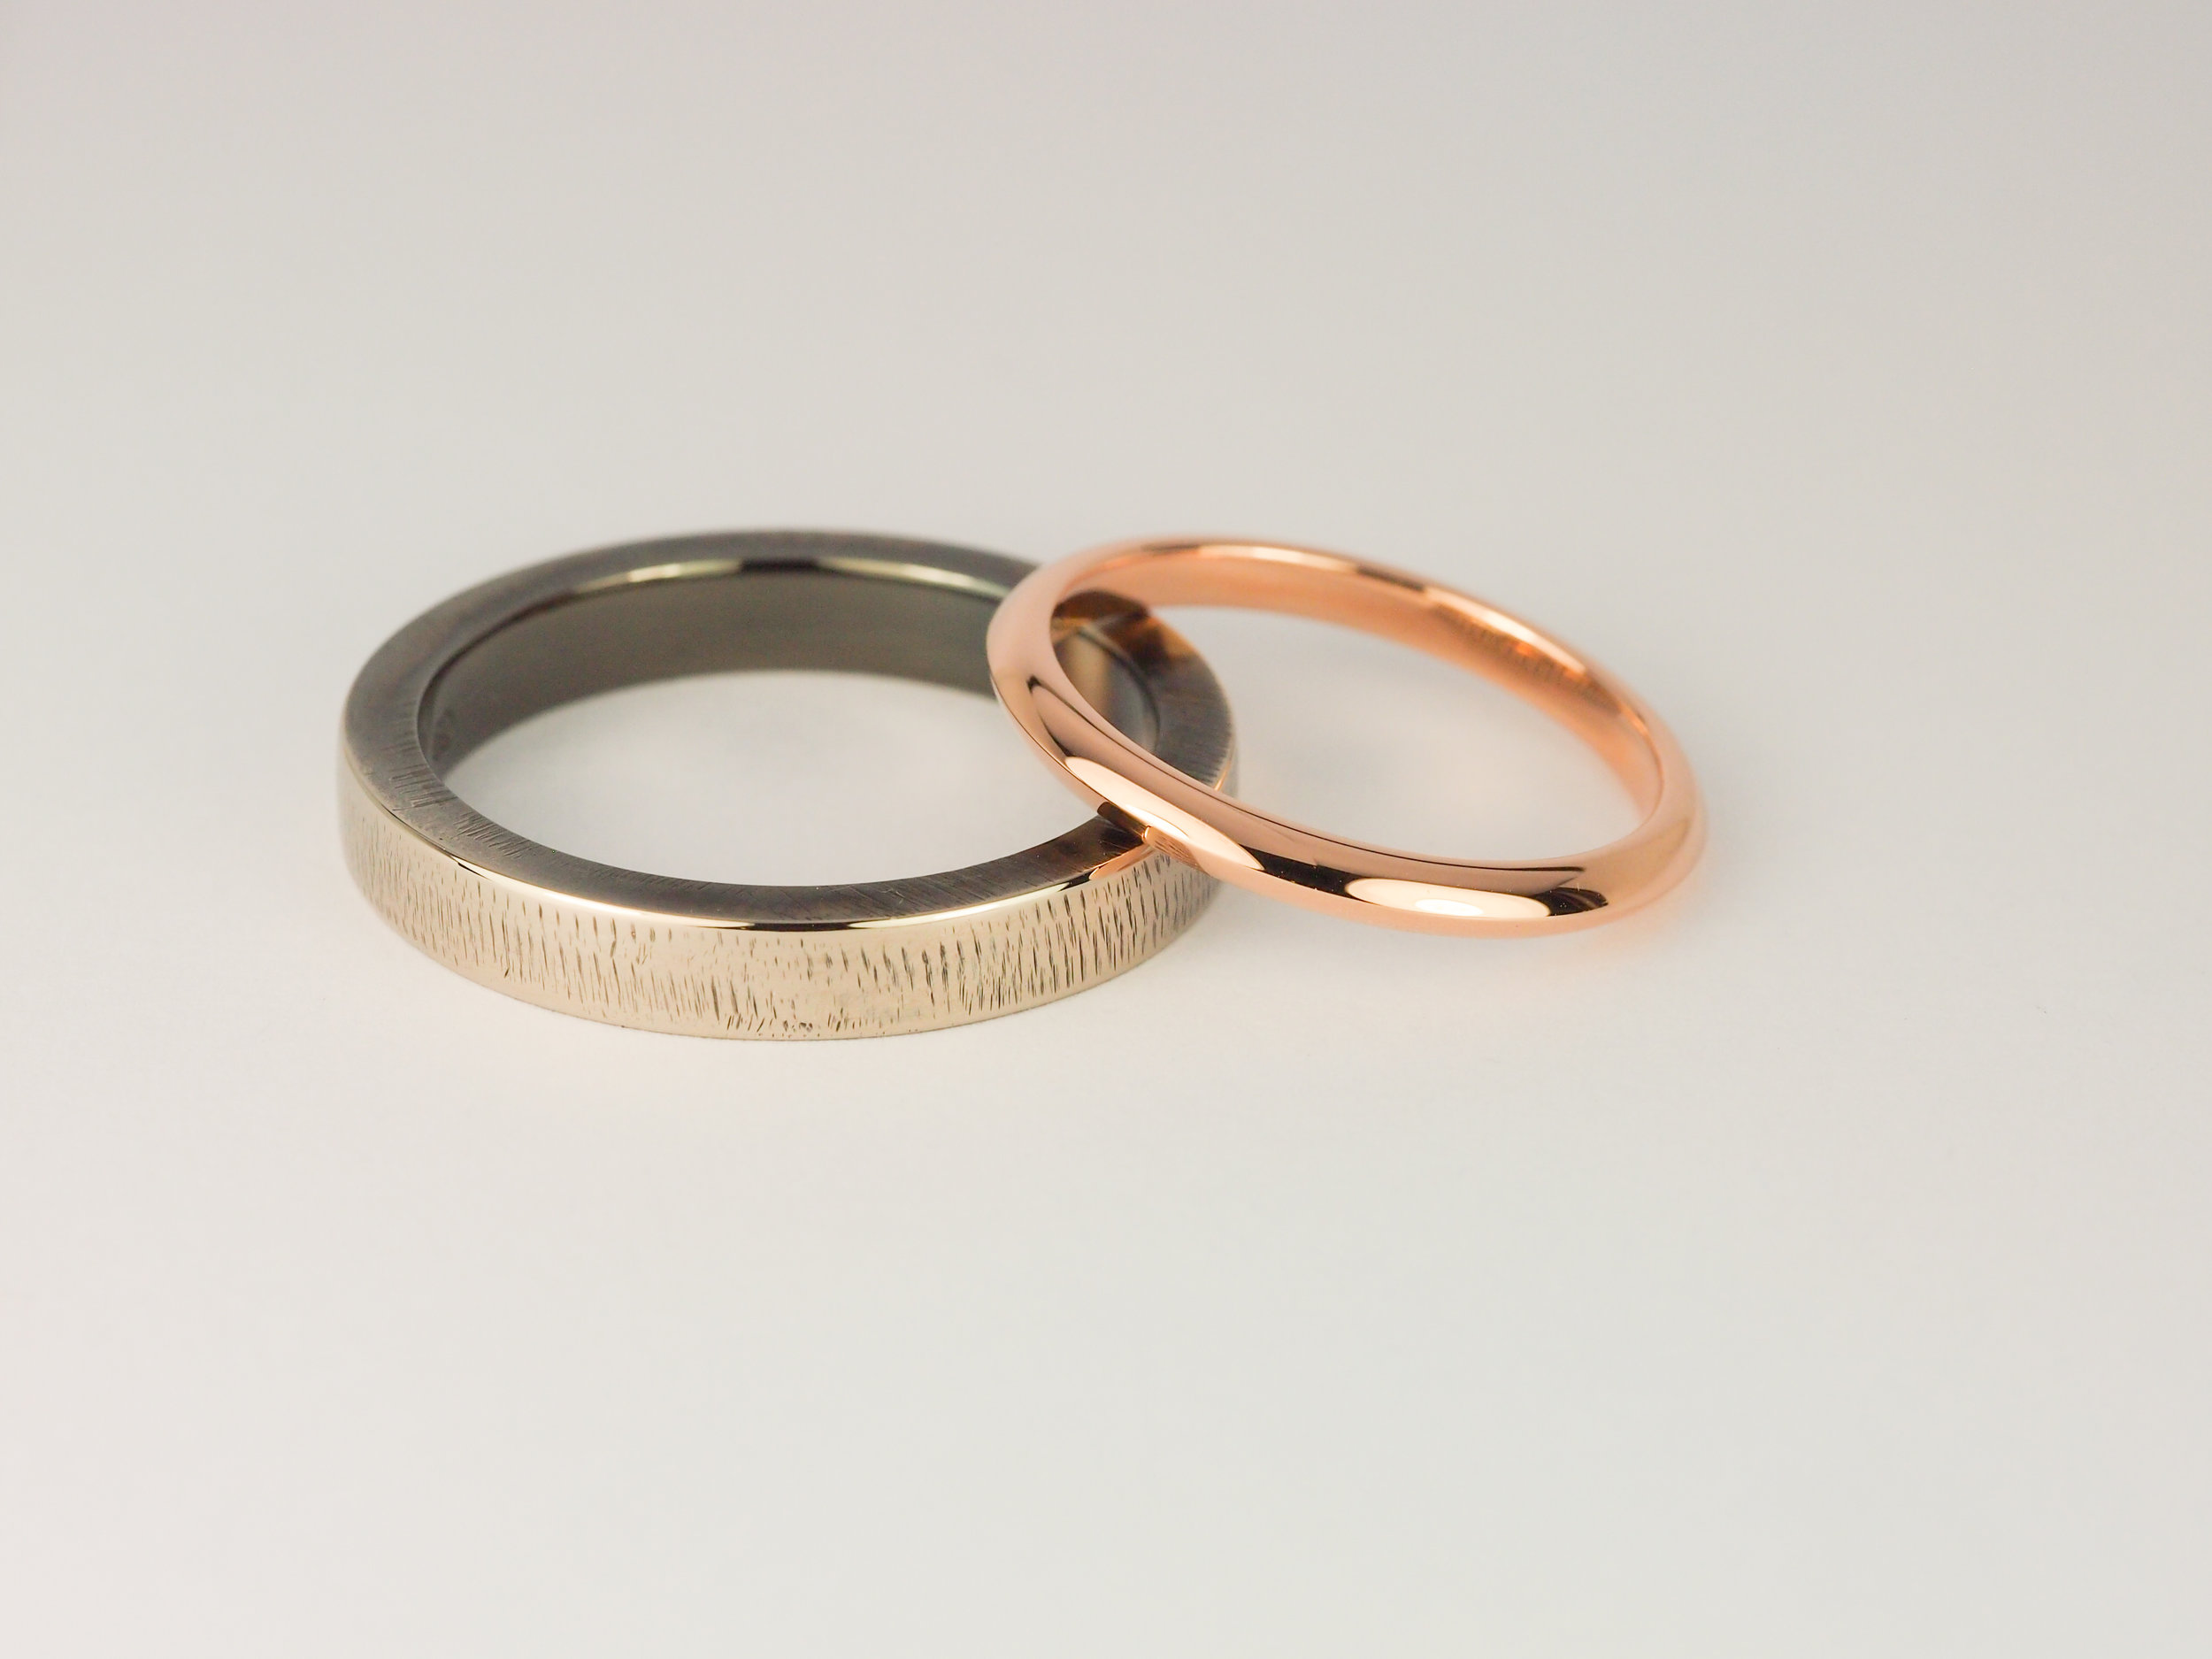 Men's grey white gold and black rhodium ring and ladies knife edge band in rose gold